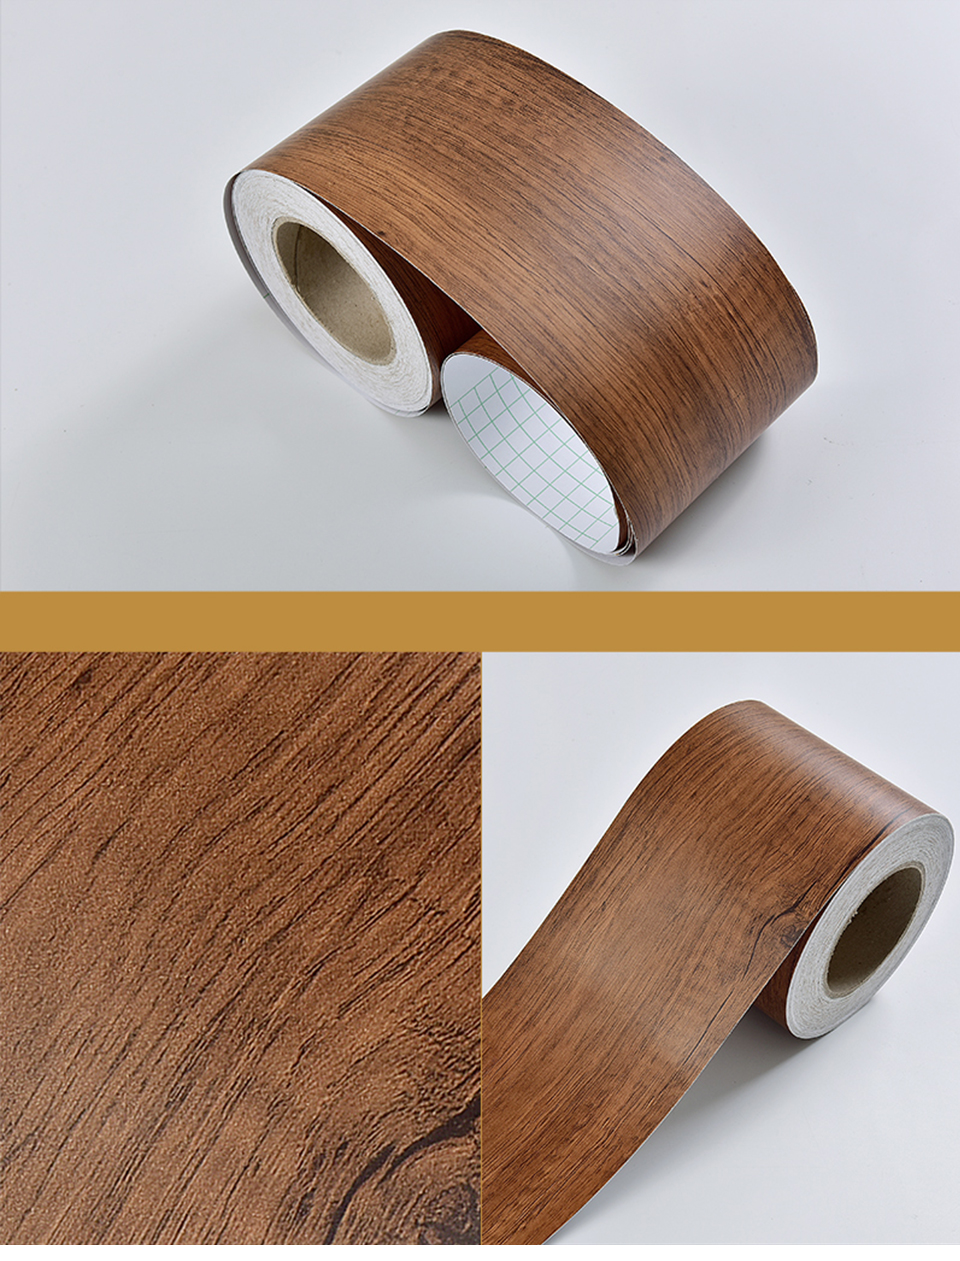 Wood Self Adhesive Window Decal Living Room Floor Border Skirting Contact Paper Waterproof Waist Line Wallpaper Home Improvement Hae0f14e6886f4f0aa5256298632d4e59Z